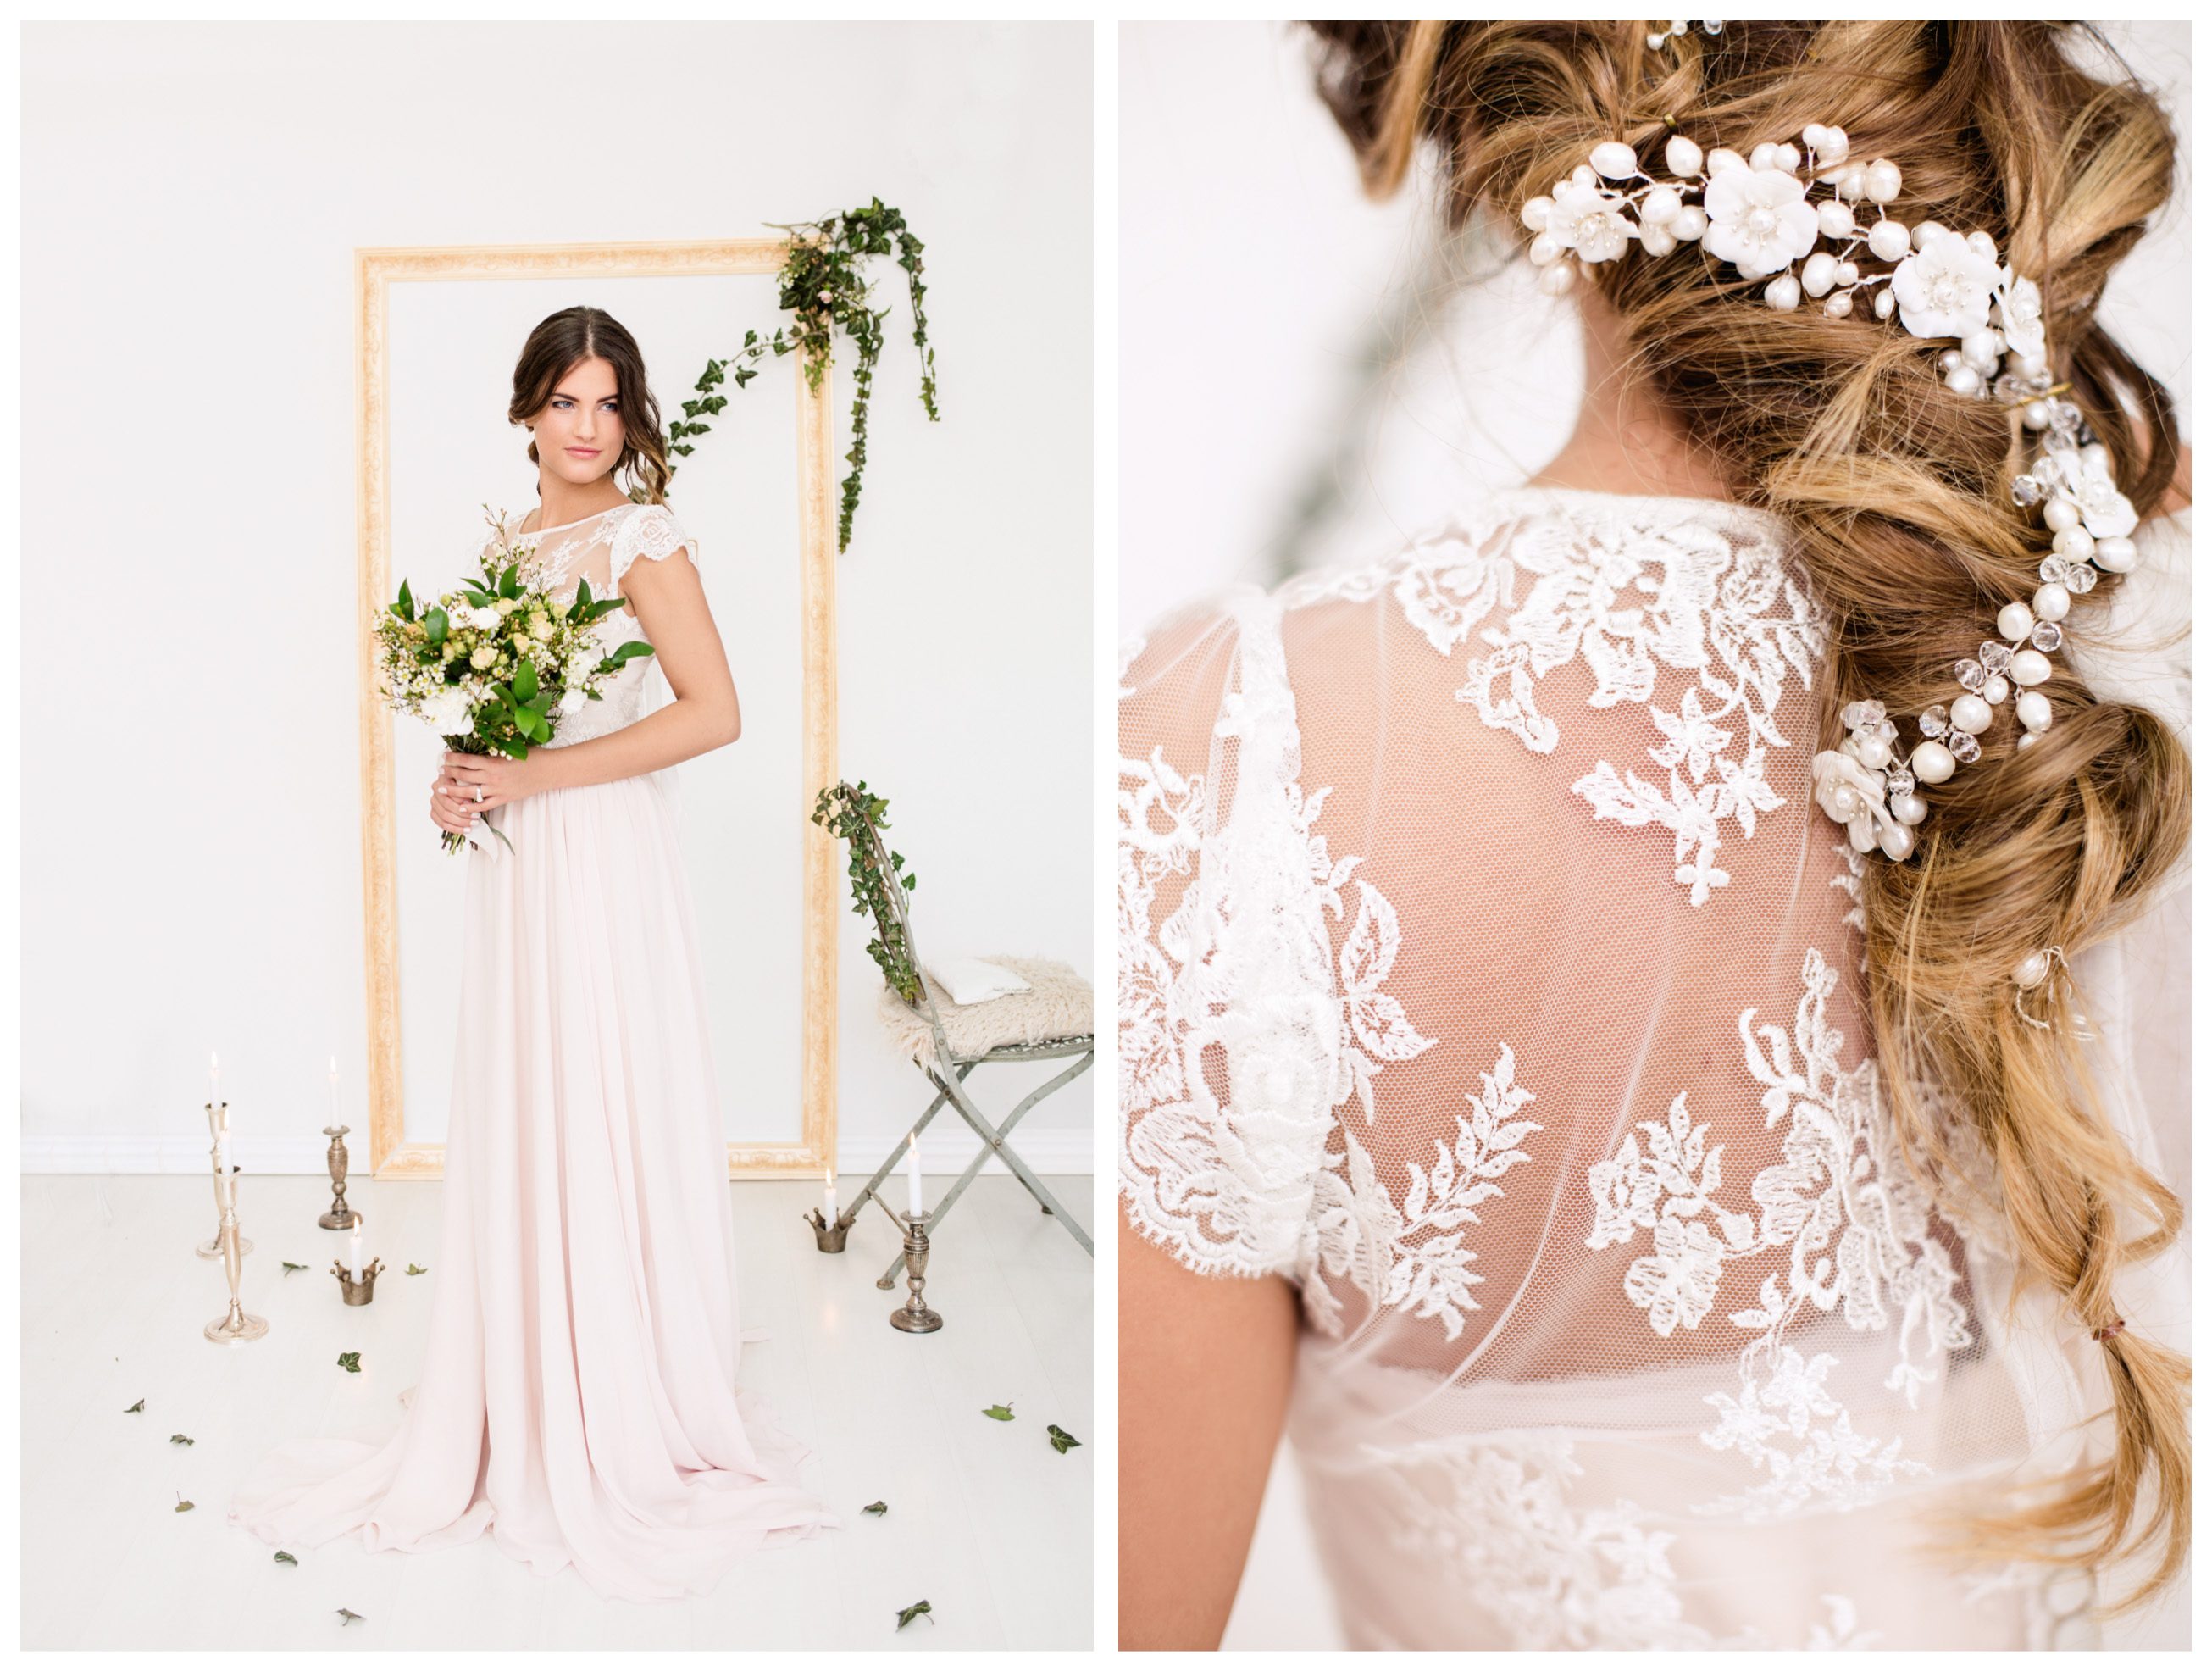 Brautmode Trends mit Sina Fischer | Hochzeitsblog The Little Wedding ...